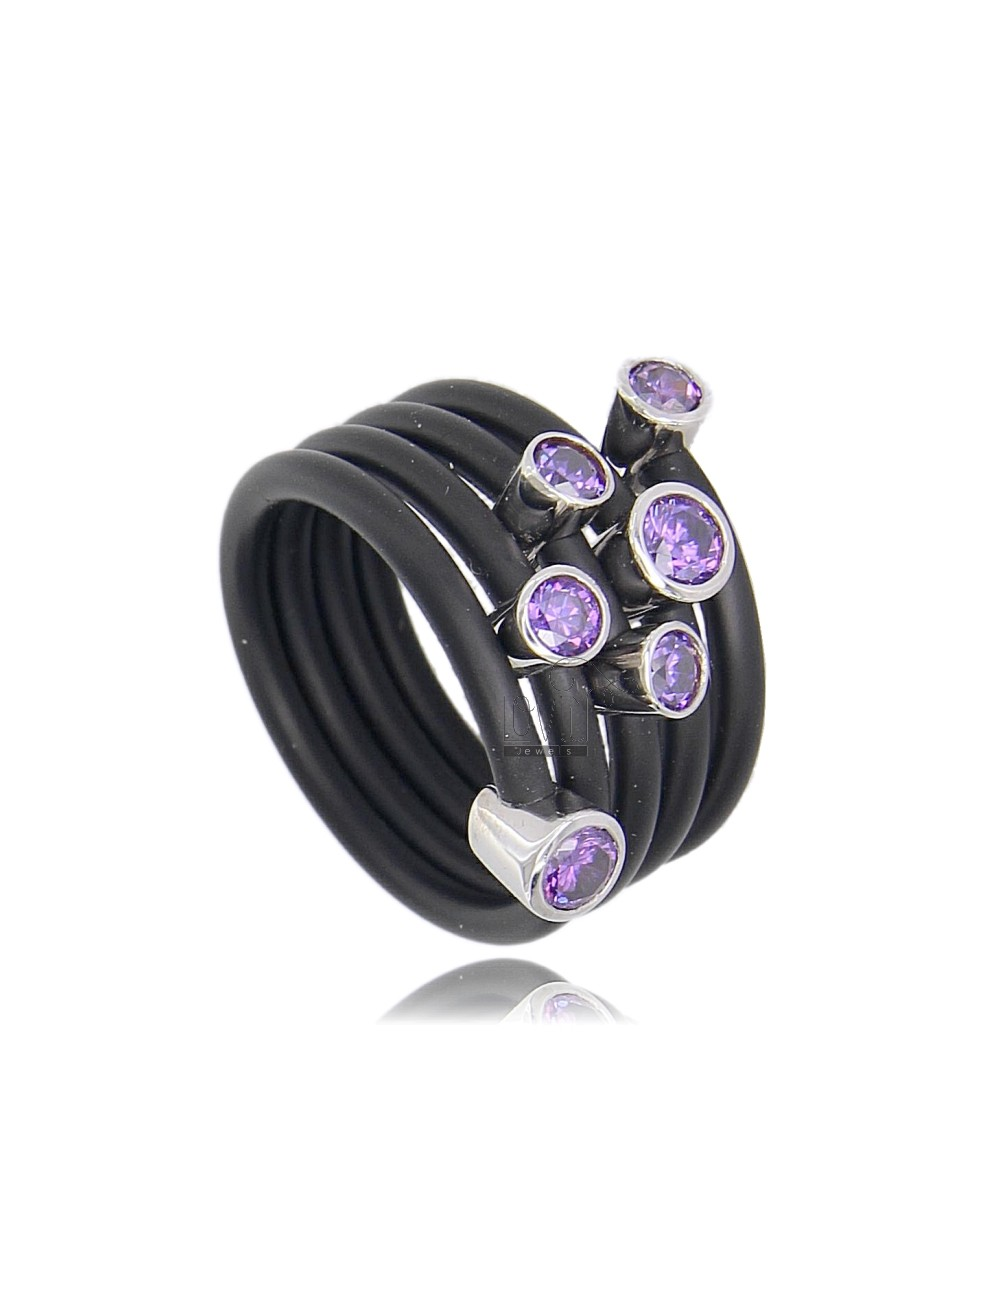 RING RUBBER &39A TUBE IN 5 ROUNDS WITH ouches AG TIT 925 ‰ ZIRCONIA WITH PURPLE SIZE 16